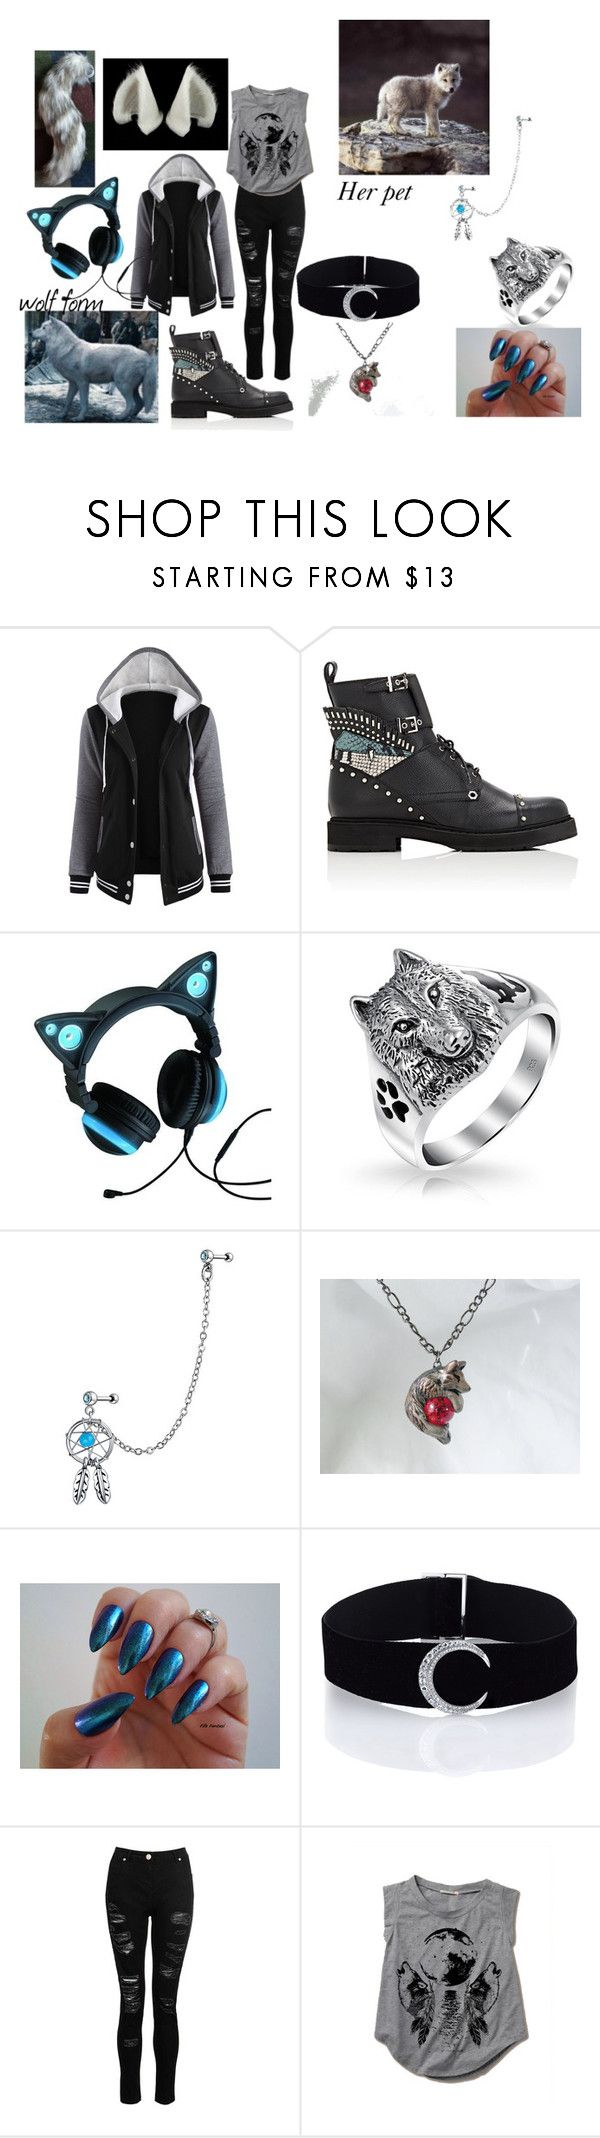 """Daughter of the Big Bad Wolf"" by outcastnation on Polyvore featuring Fendi, Bling Jewelry, Dorothy Perkins and Maison Kitsuné"